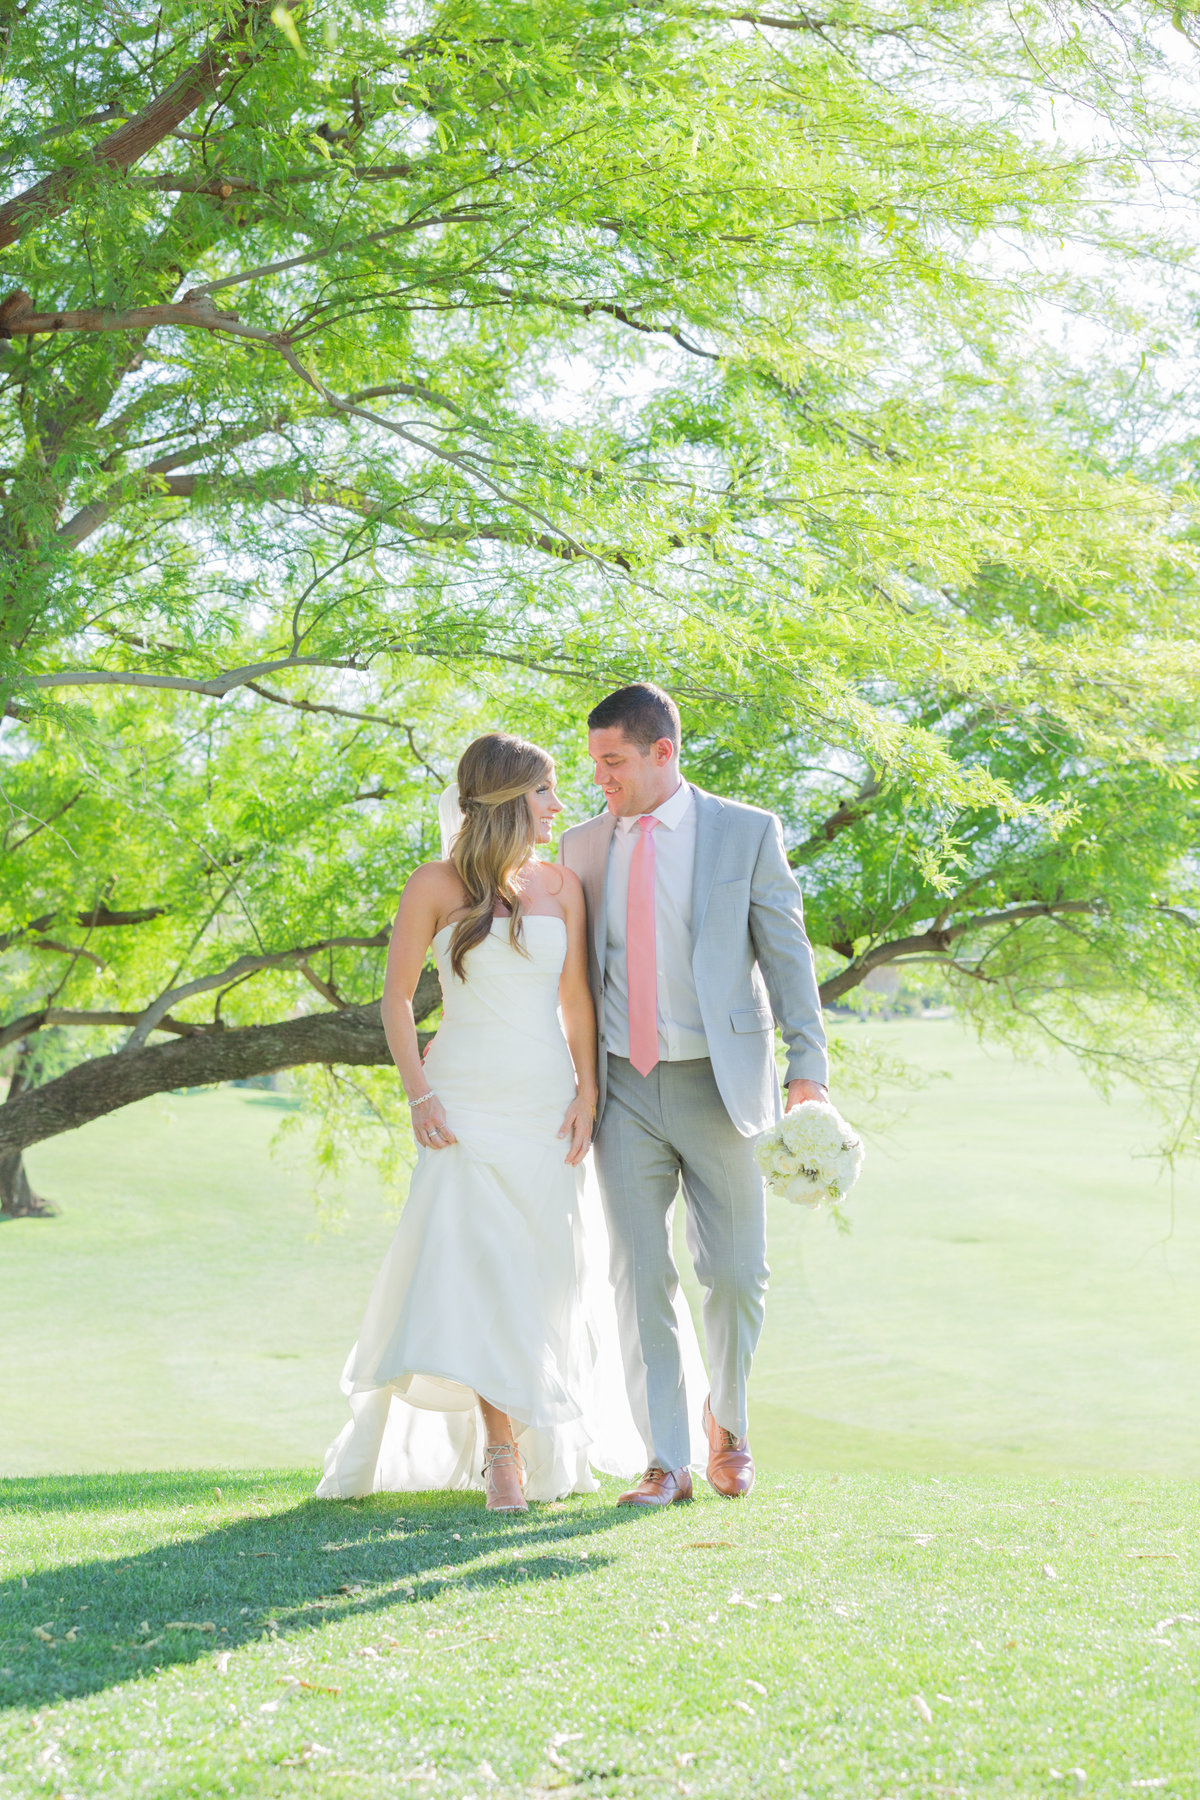 Erica Mendenhall Photography_Barn Wedding_MP_0263web